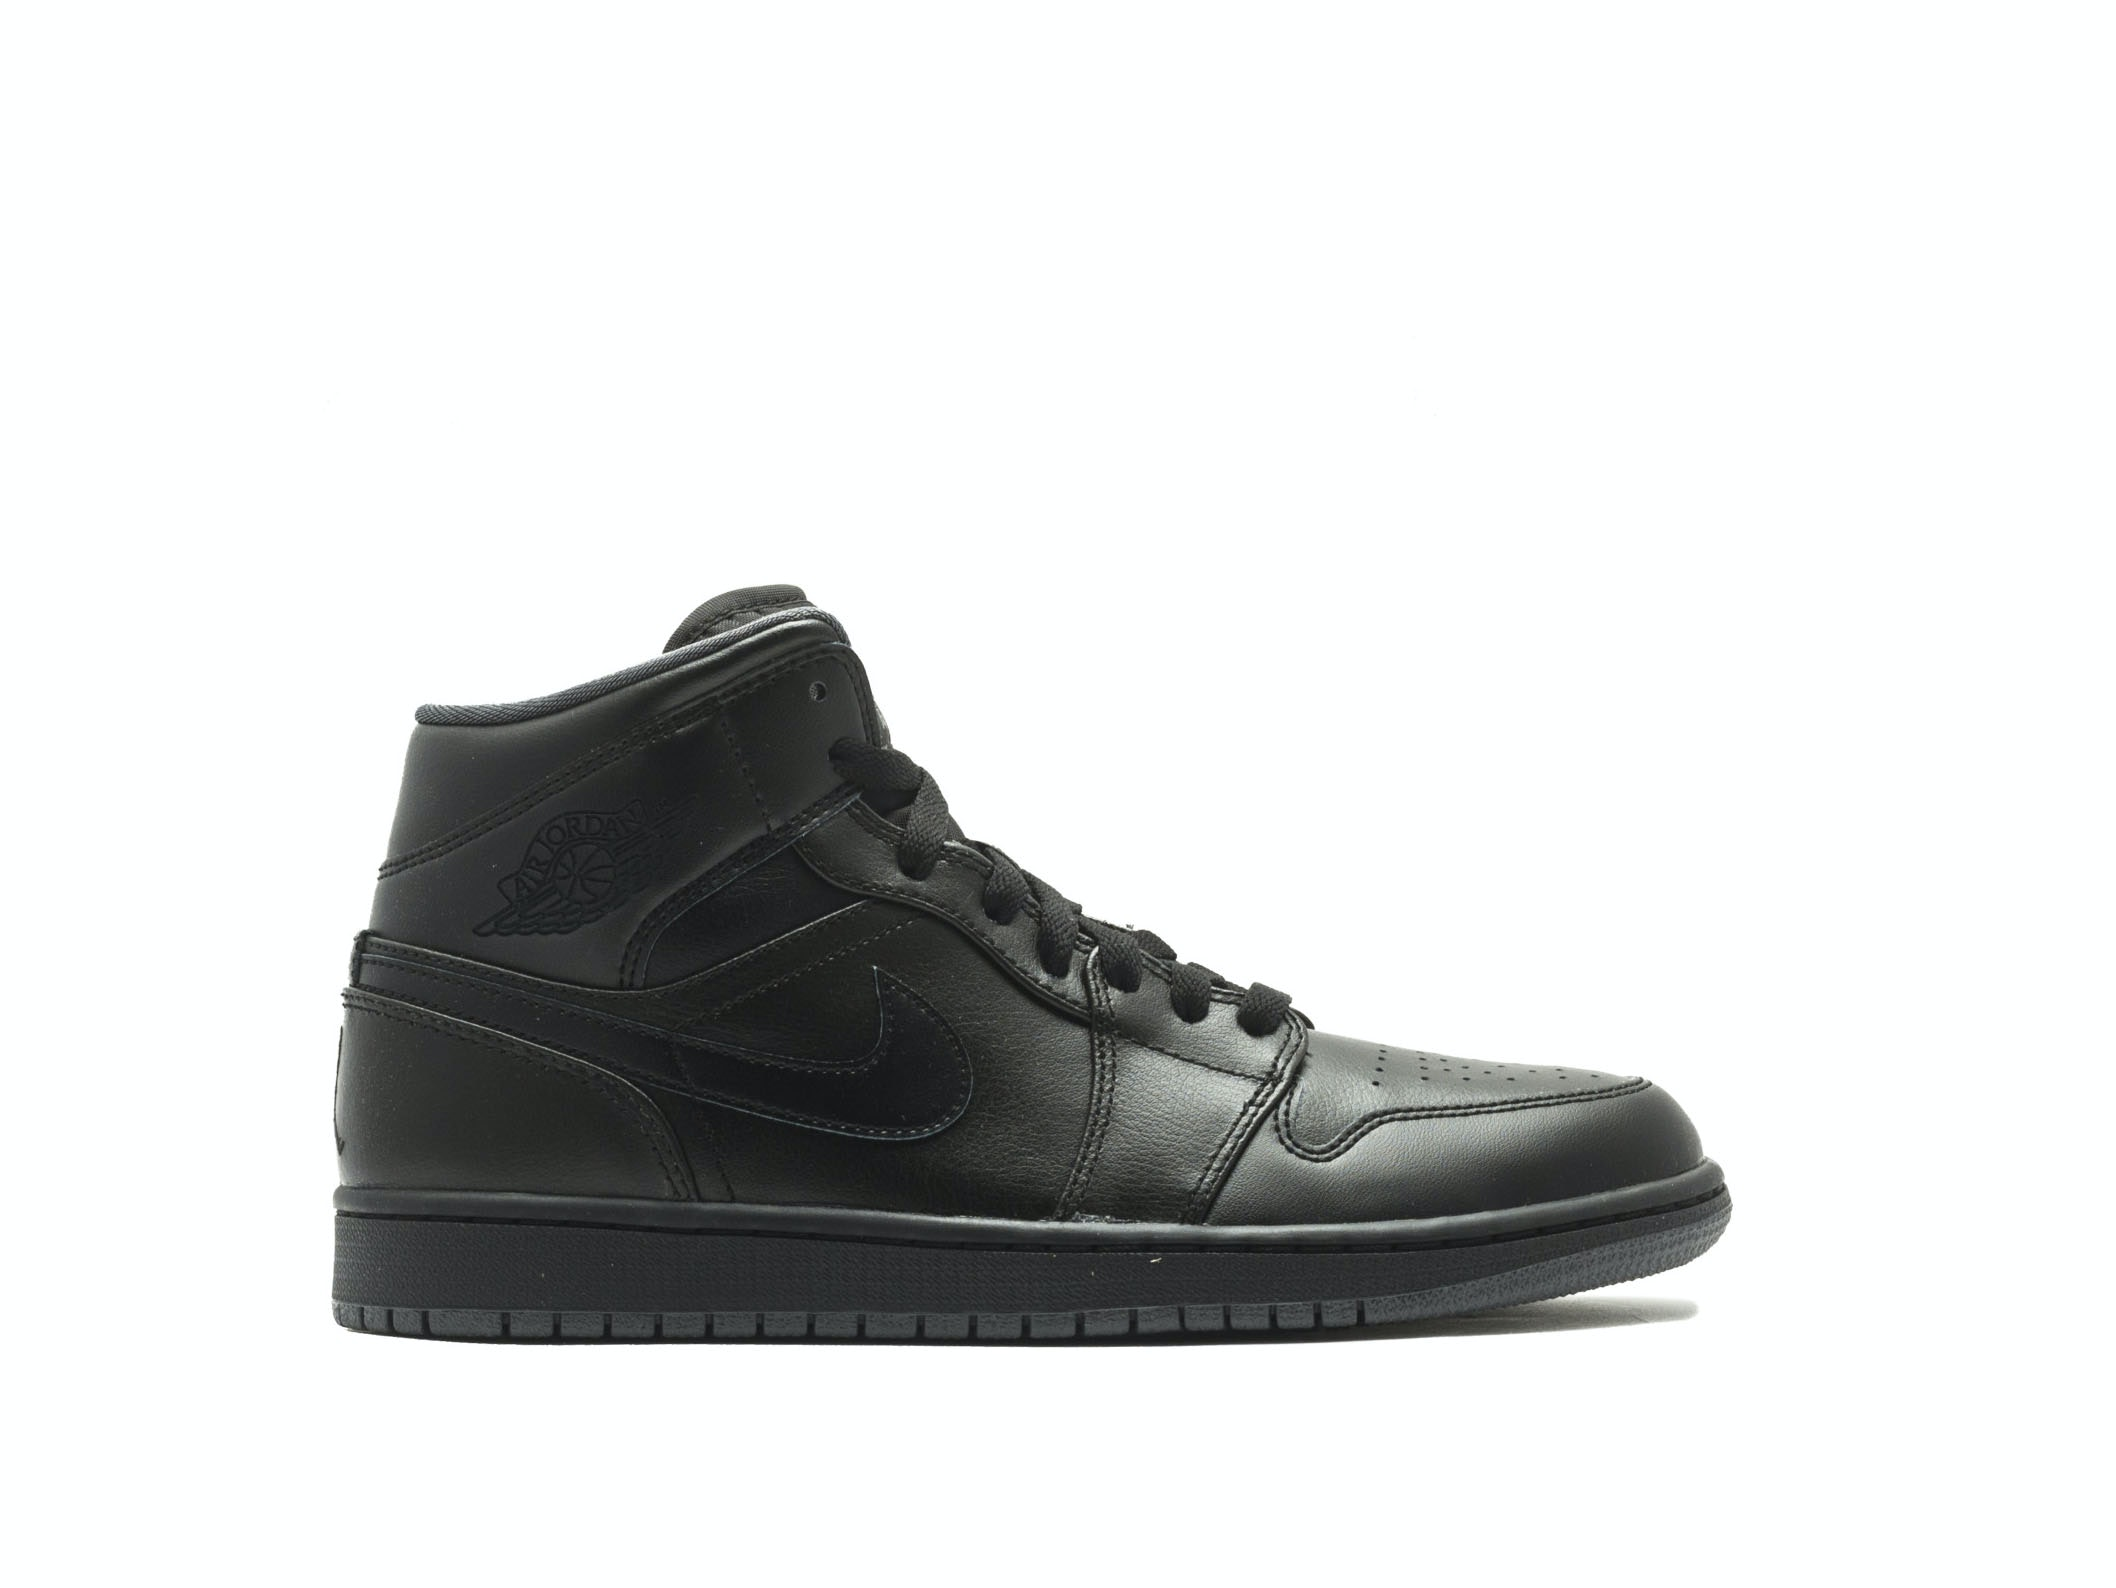 a90609a0a773 Shop Air Jordan 1 Retro Mid 2016 Black Online